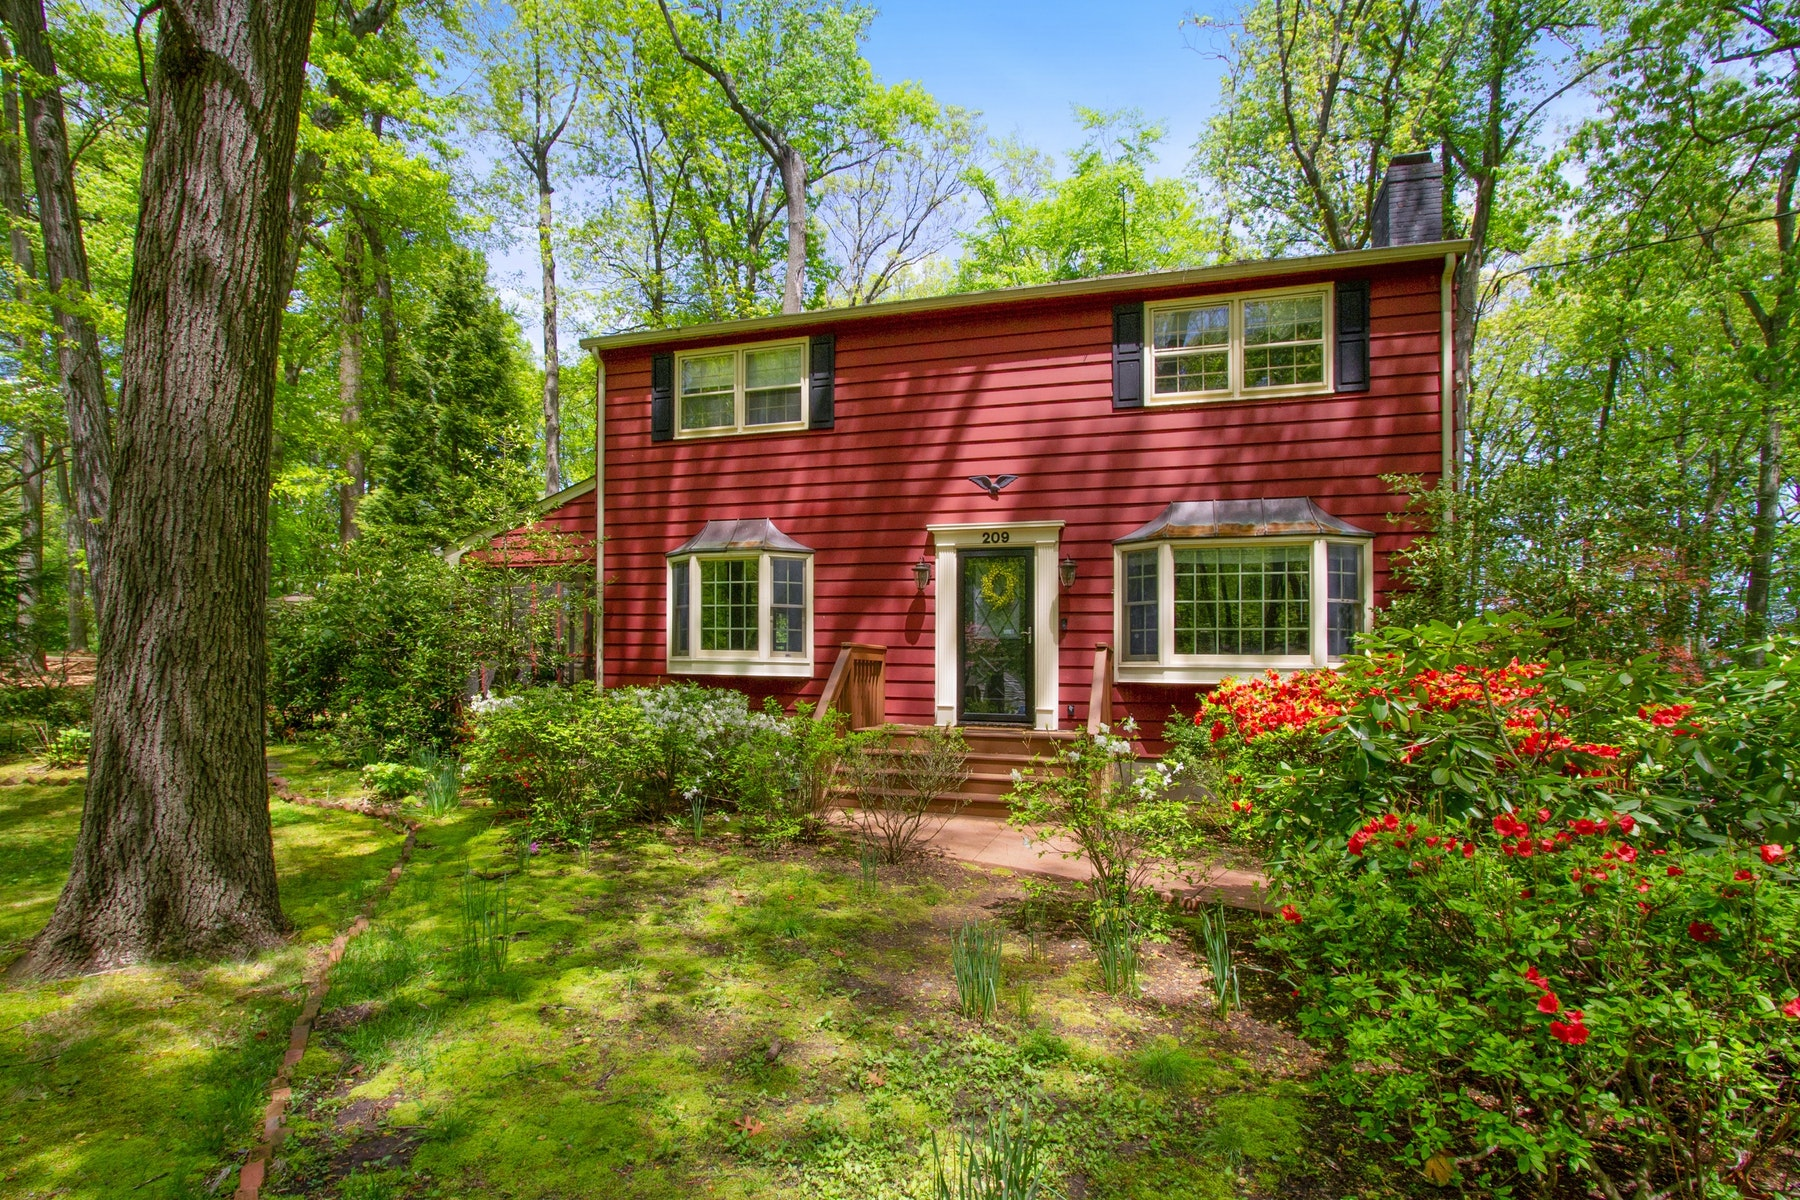 Single Family Homes for Sale at LIVE LINCROFT 209 Woodland Drive Lincroft, New Jersey 07738 United States